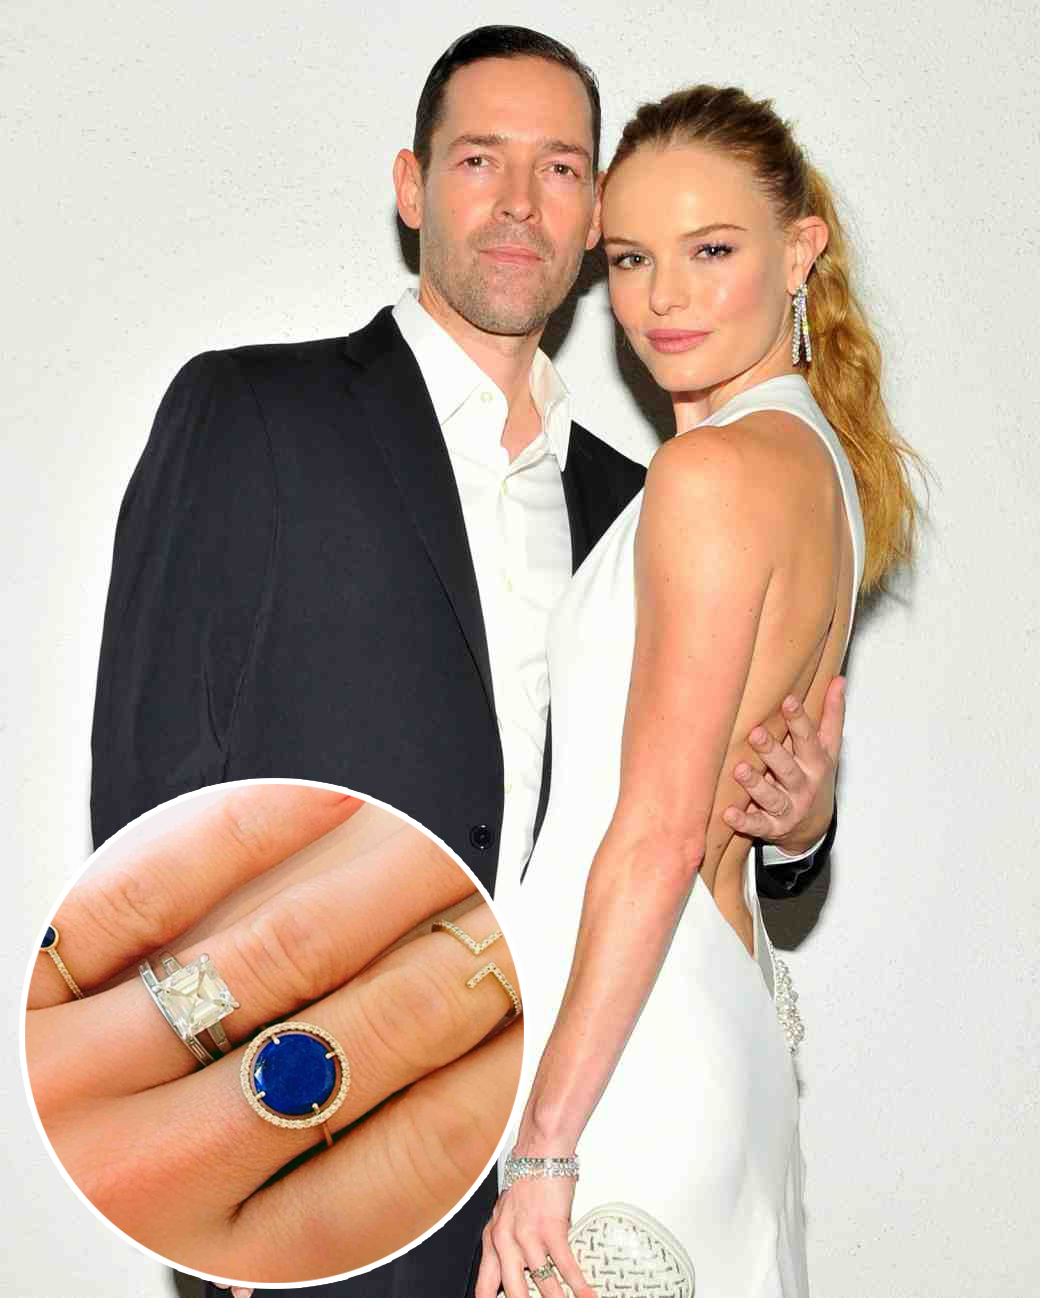 kate-bosworth-ring-inset-0316.jpg